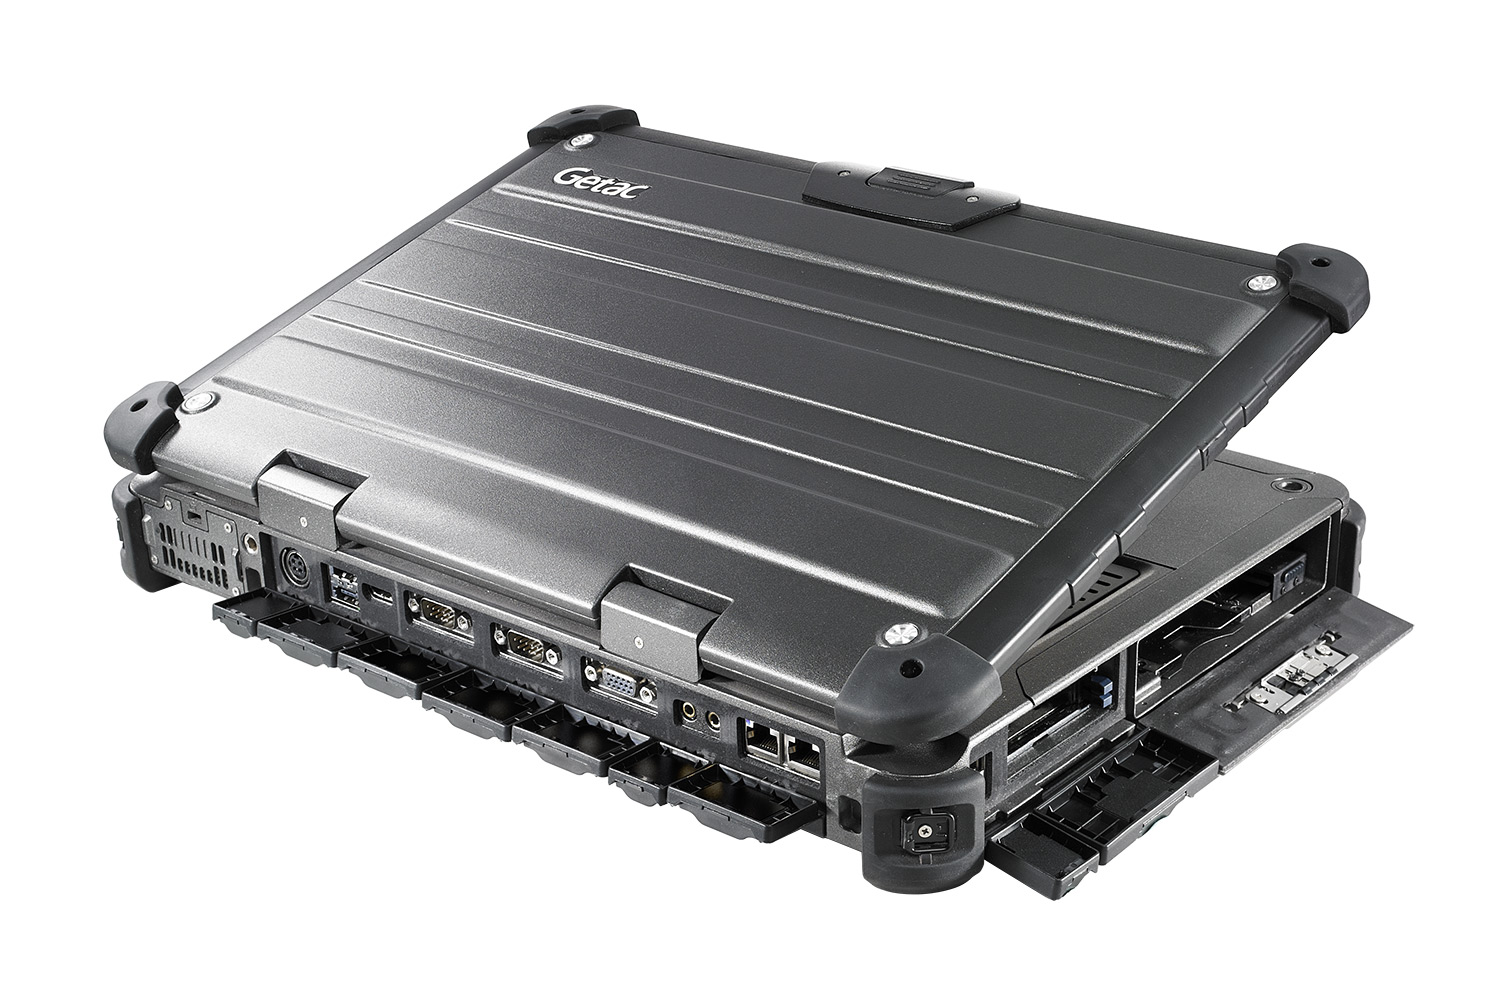 050-X500-Rugged-expandable-notebook-00013